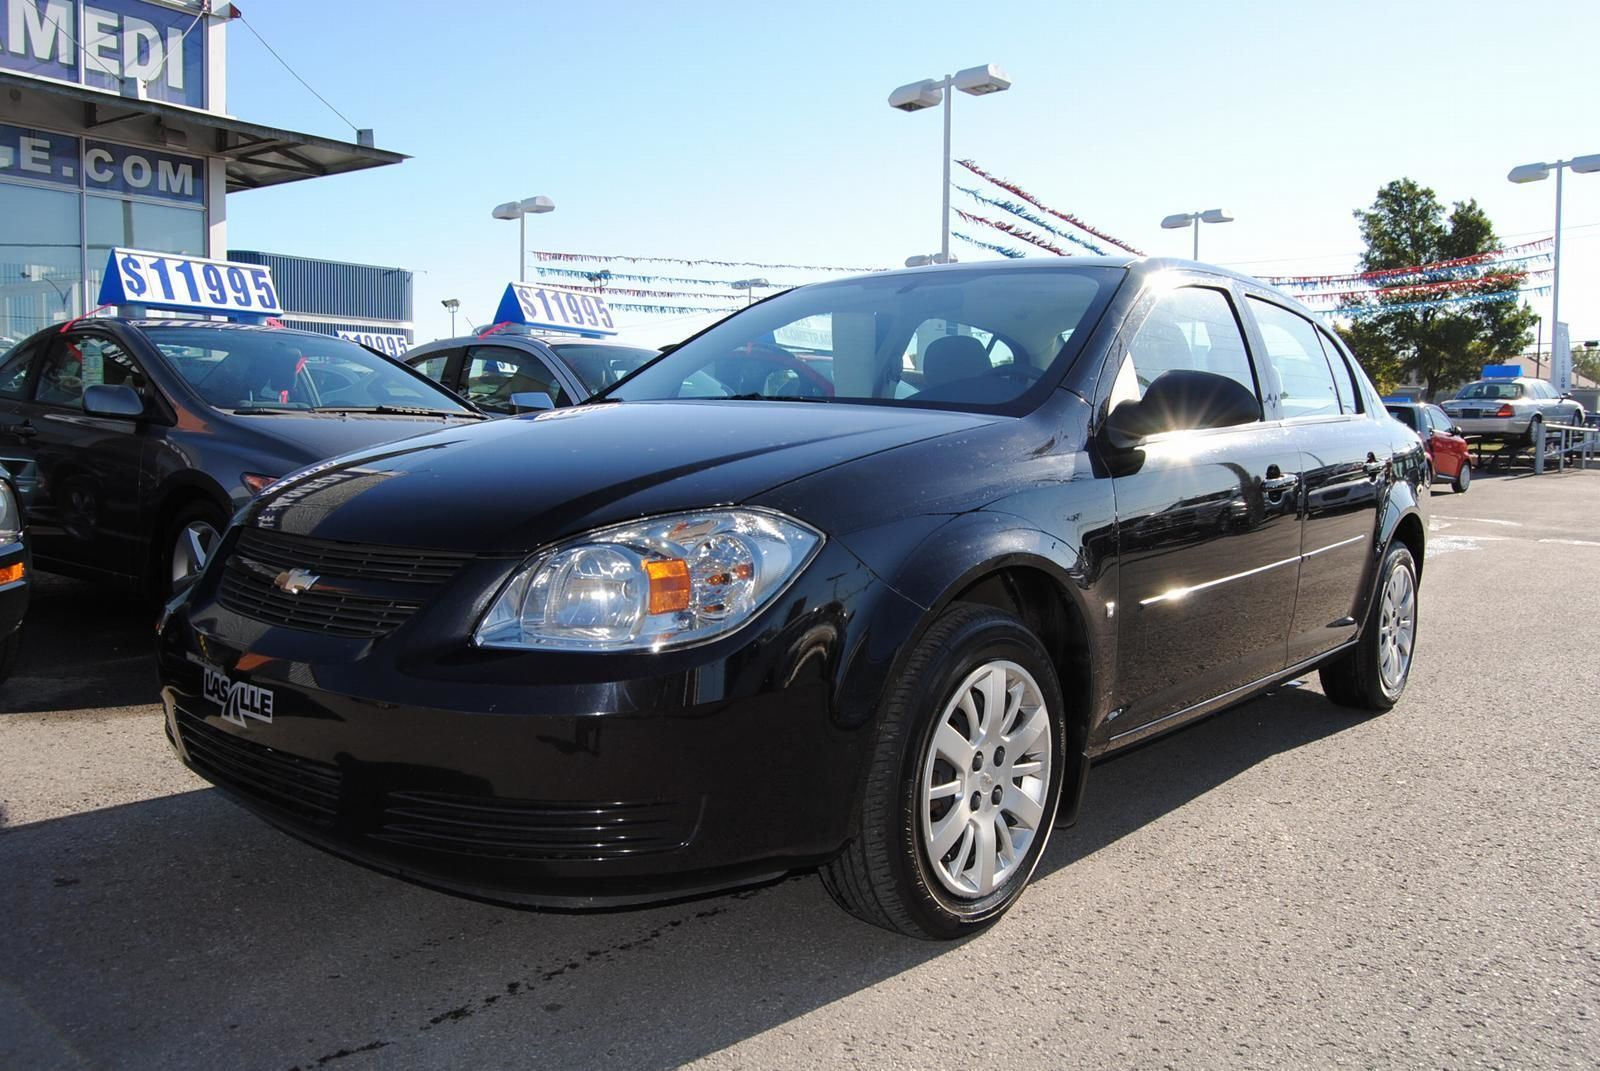 2009 chevrolet cobalt ls pre owned vehicles lasalle. Cars Review. Best American Auto & Cars Review